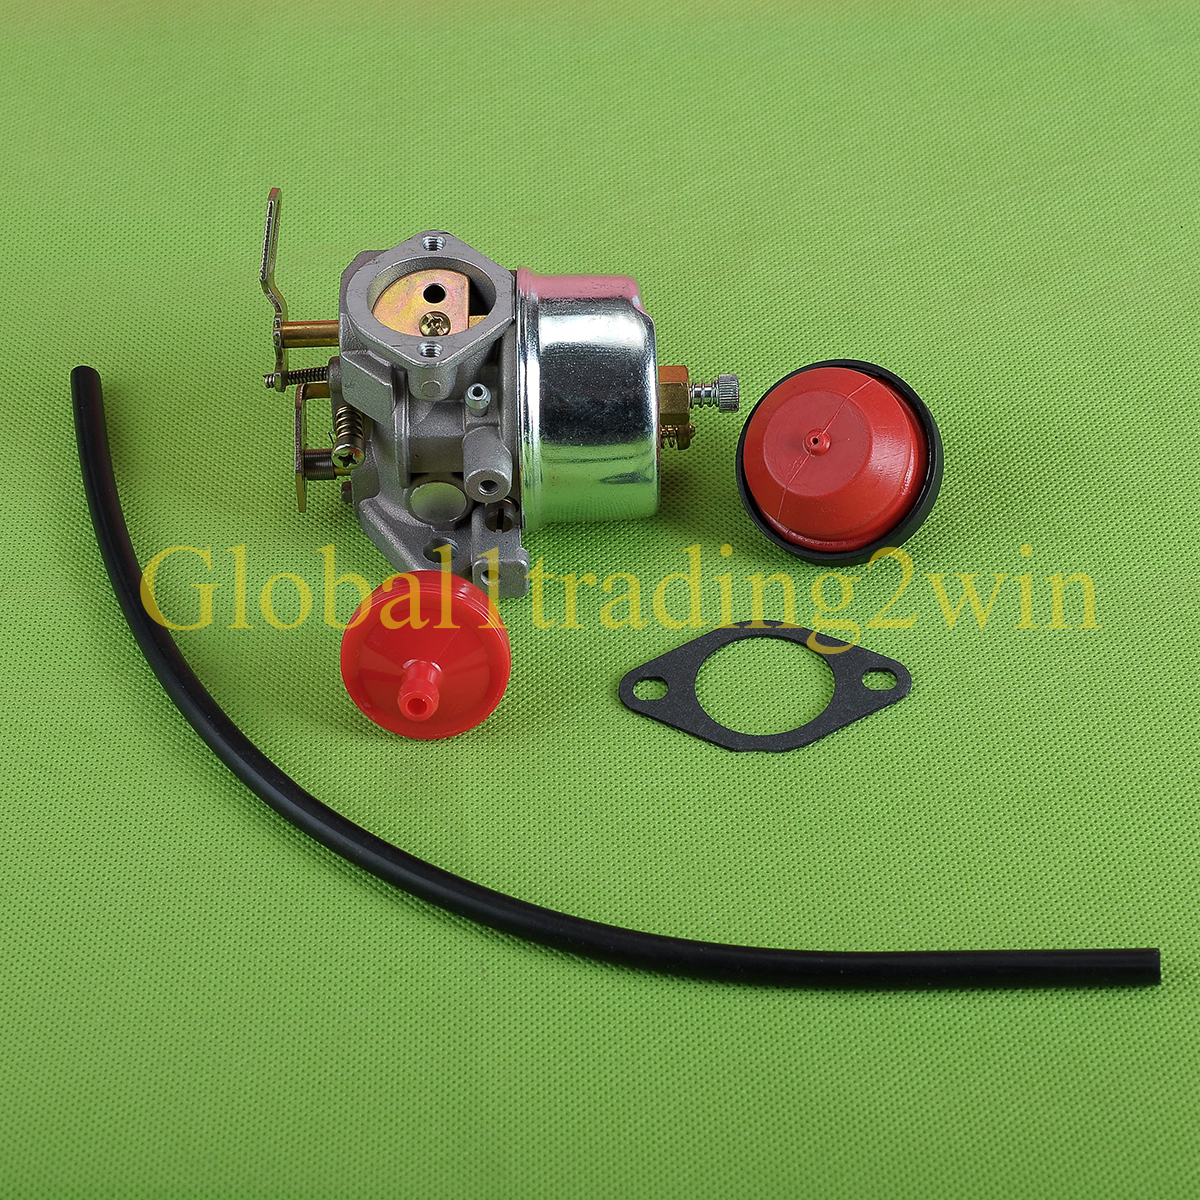 carburetor primer bulb pump fuel filter for tecumseh hm100 ... fuel filter for craftsman chainsaws fuel filter for tecumseh hm100 #7